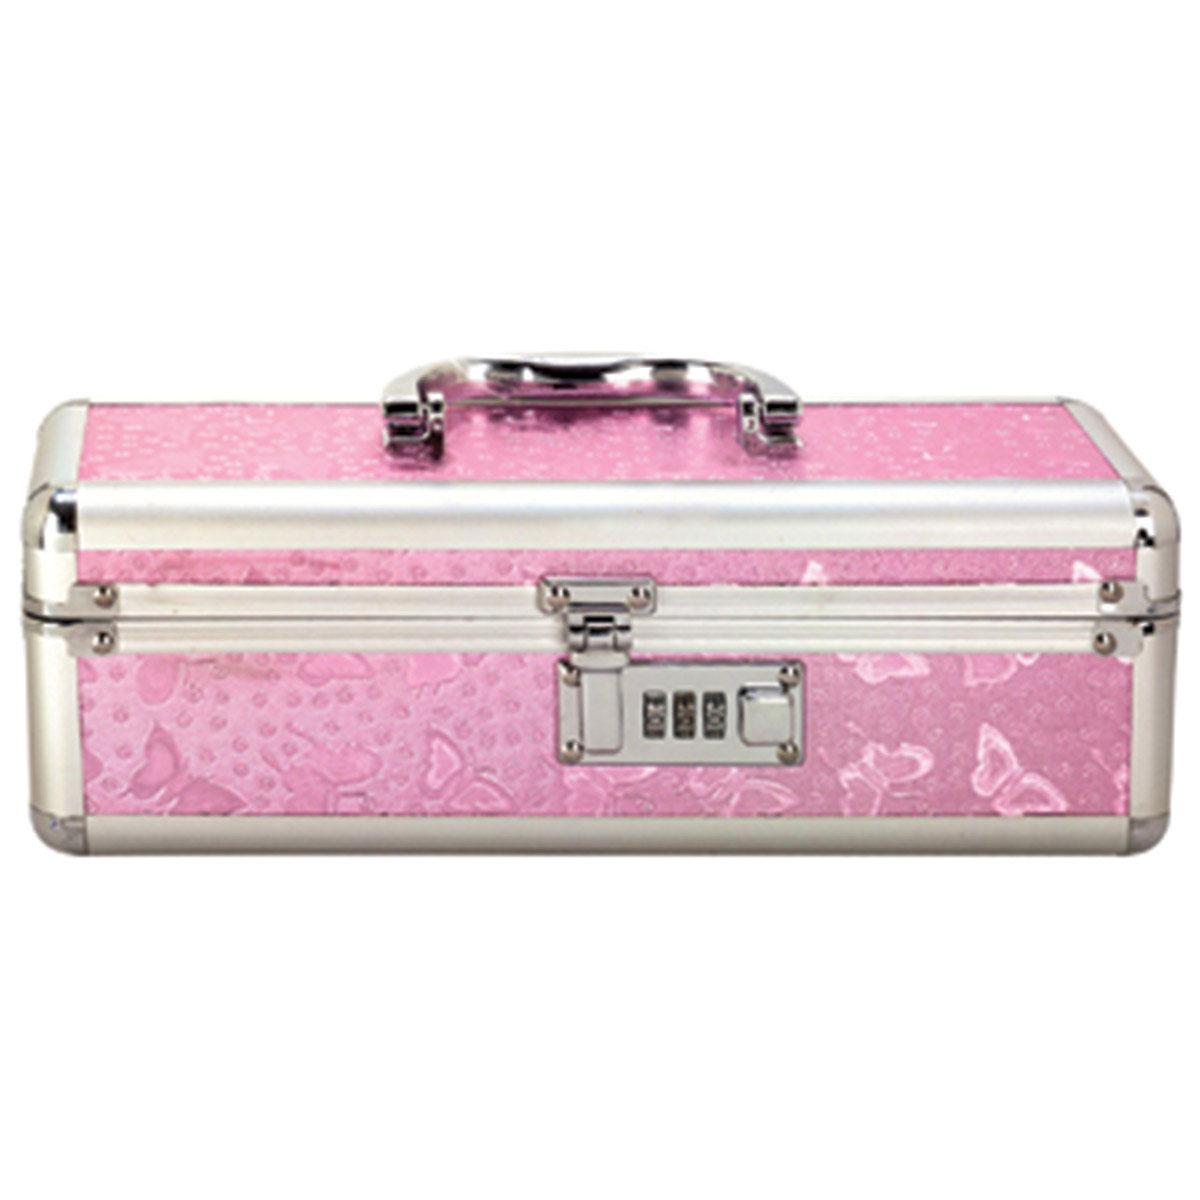 "Lockable Toy Box Medium 12""x4""x4"" - Pink"